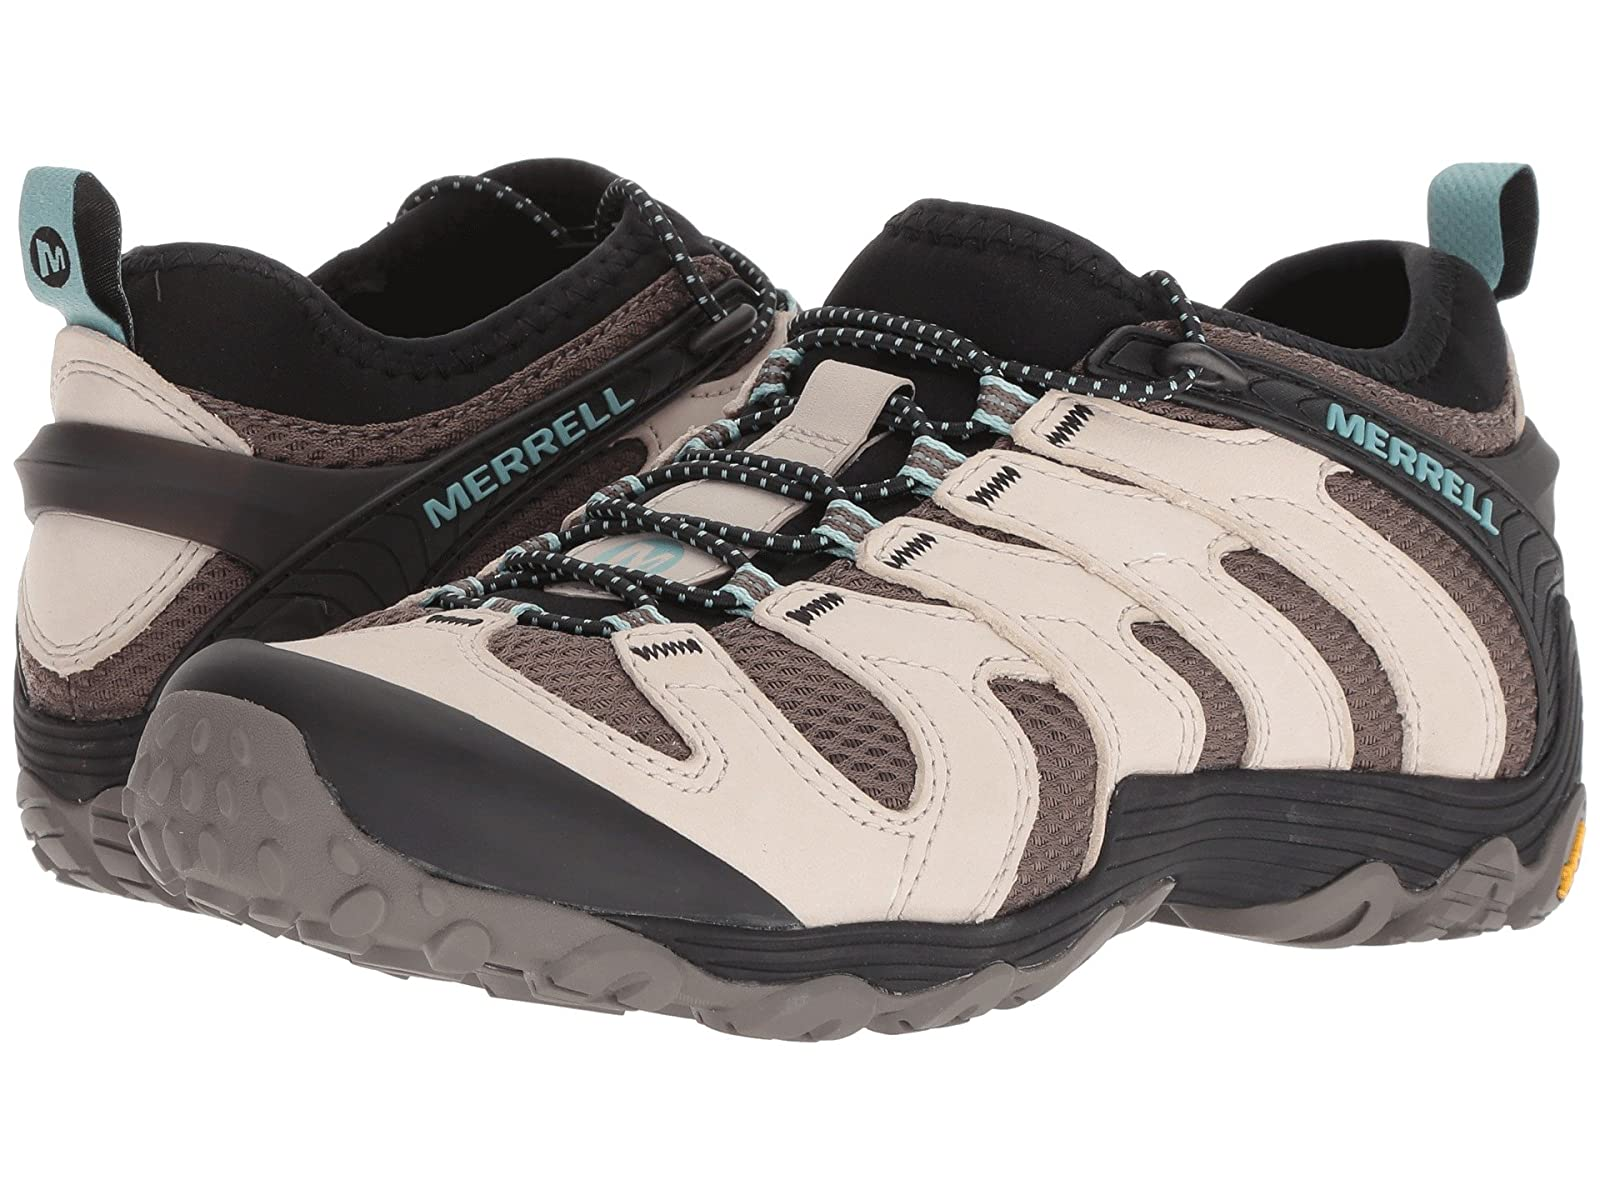 Merrell Chameleon 7 StretchAtmospheric grades have affordable shoes